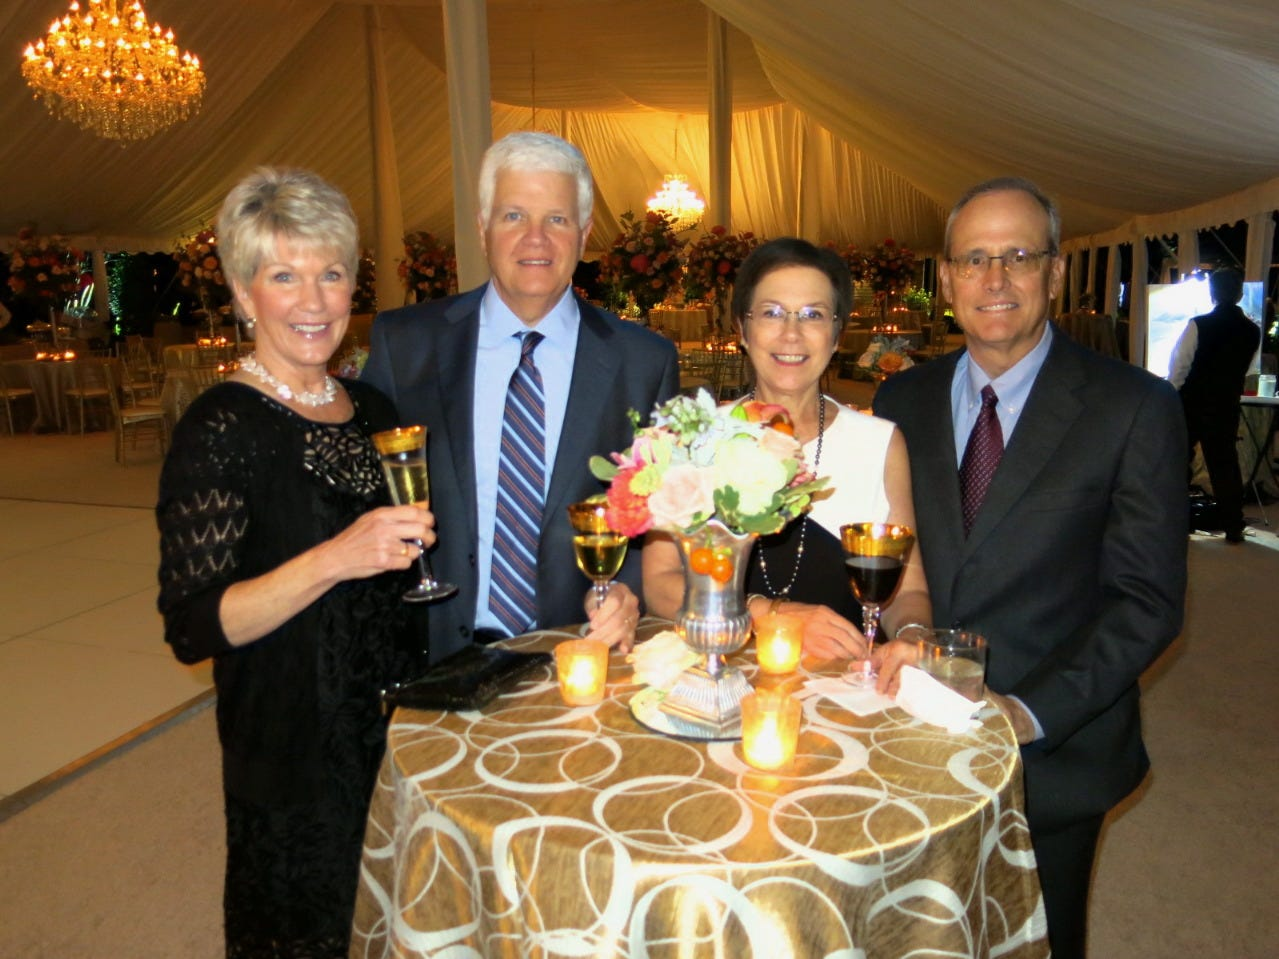 Florence and Jim Bethard and Stacy and Dr. Larry Hand at wedding reception.